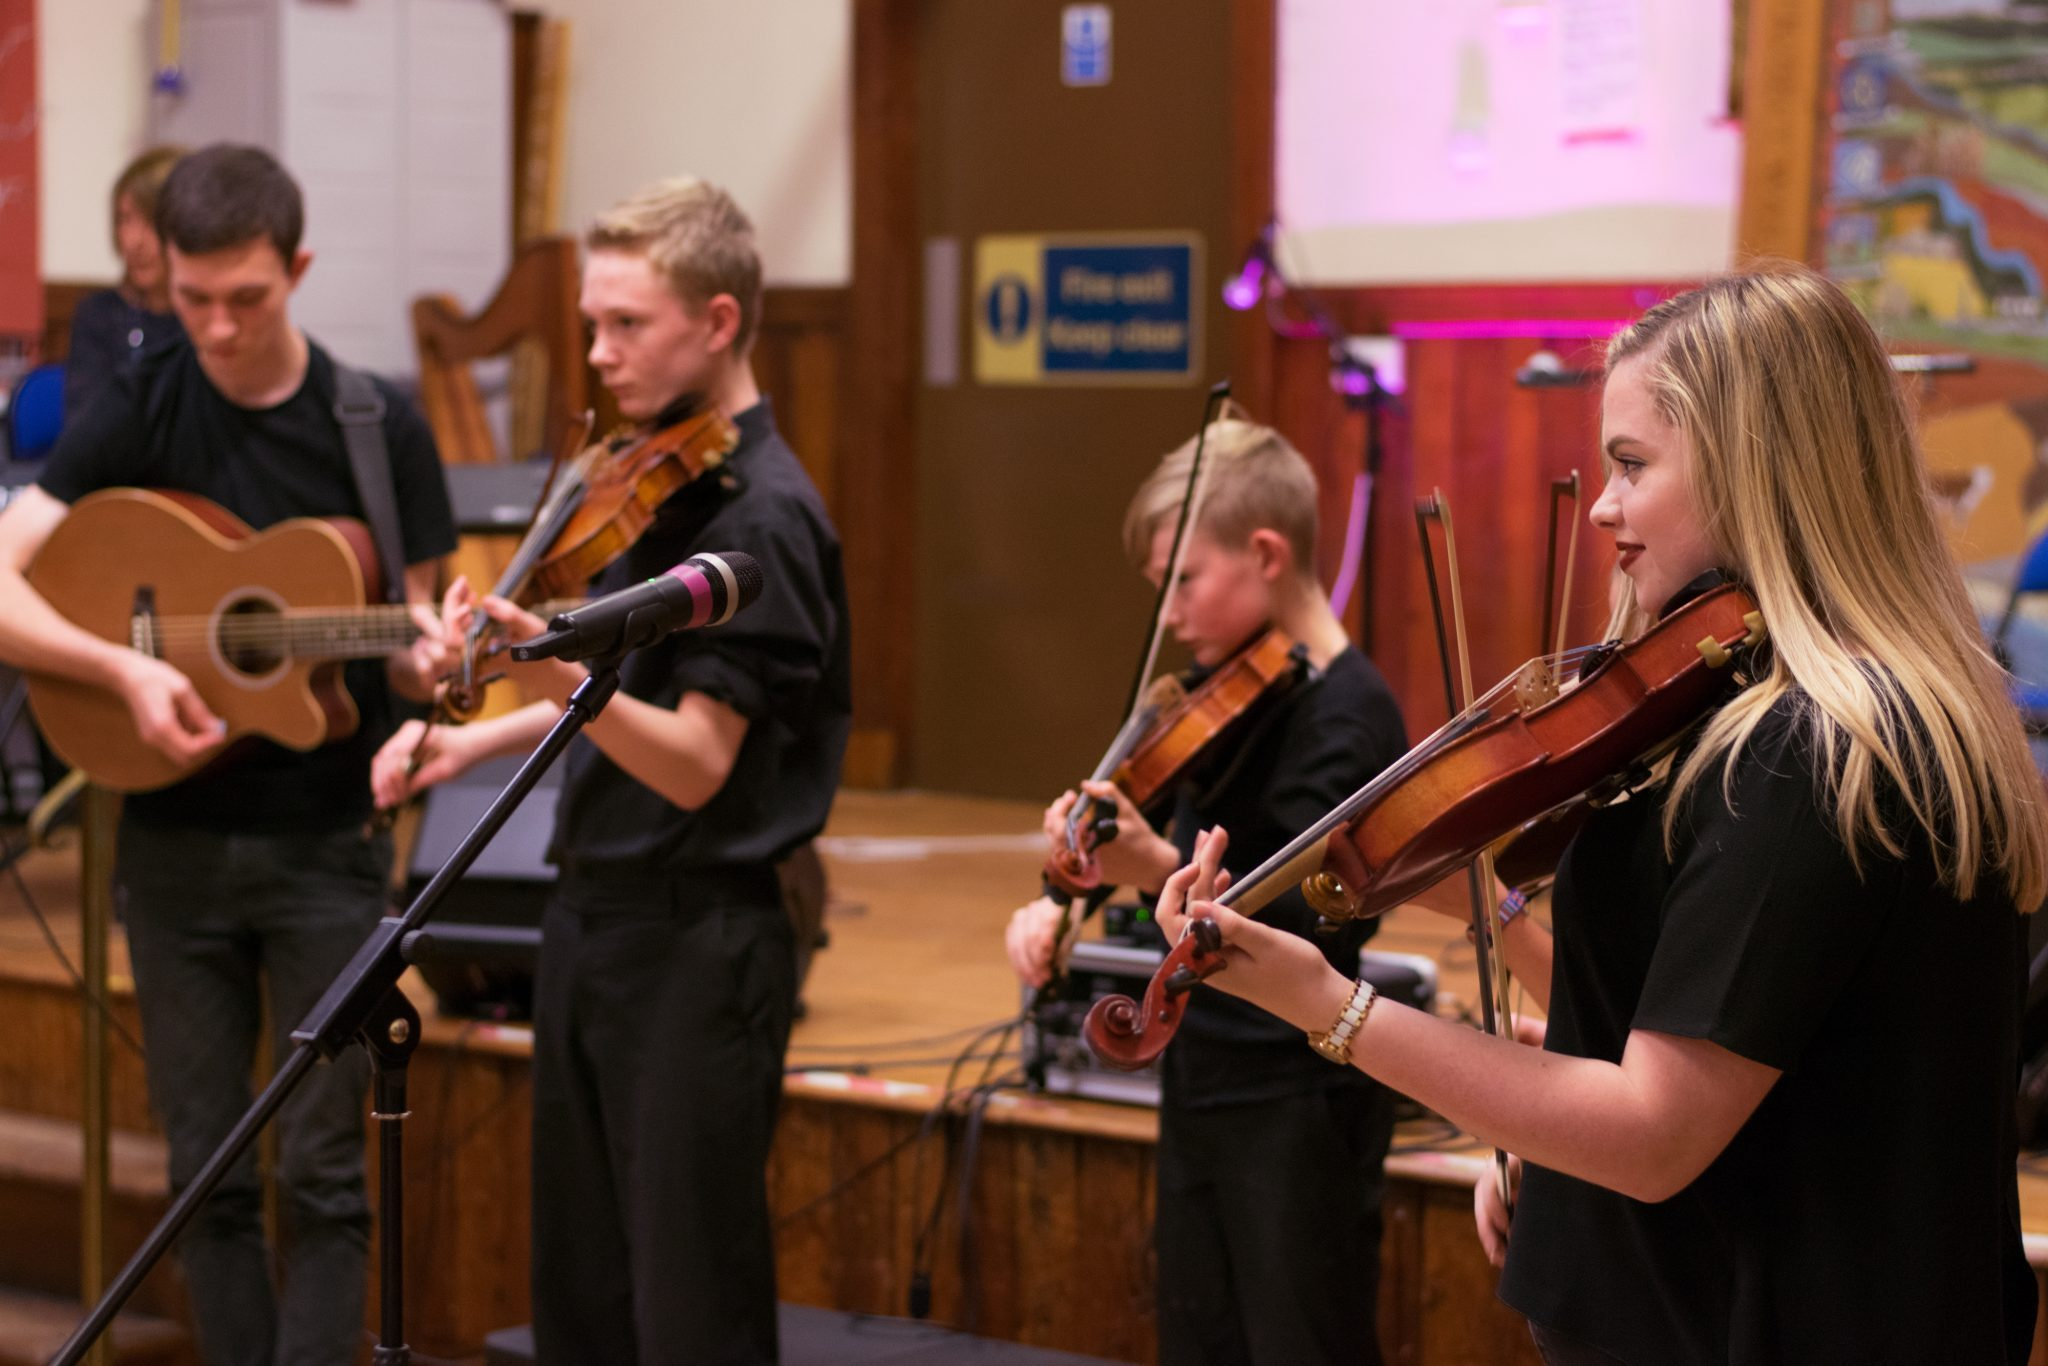 Kiltearn Fiddlers perform at Diamond Jubilee Hall in Evanton.